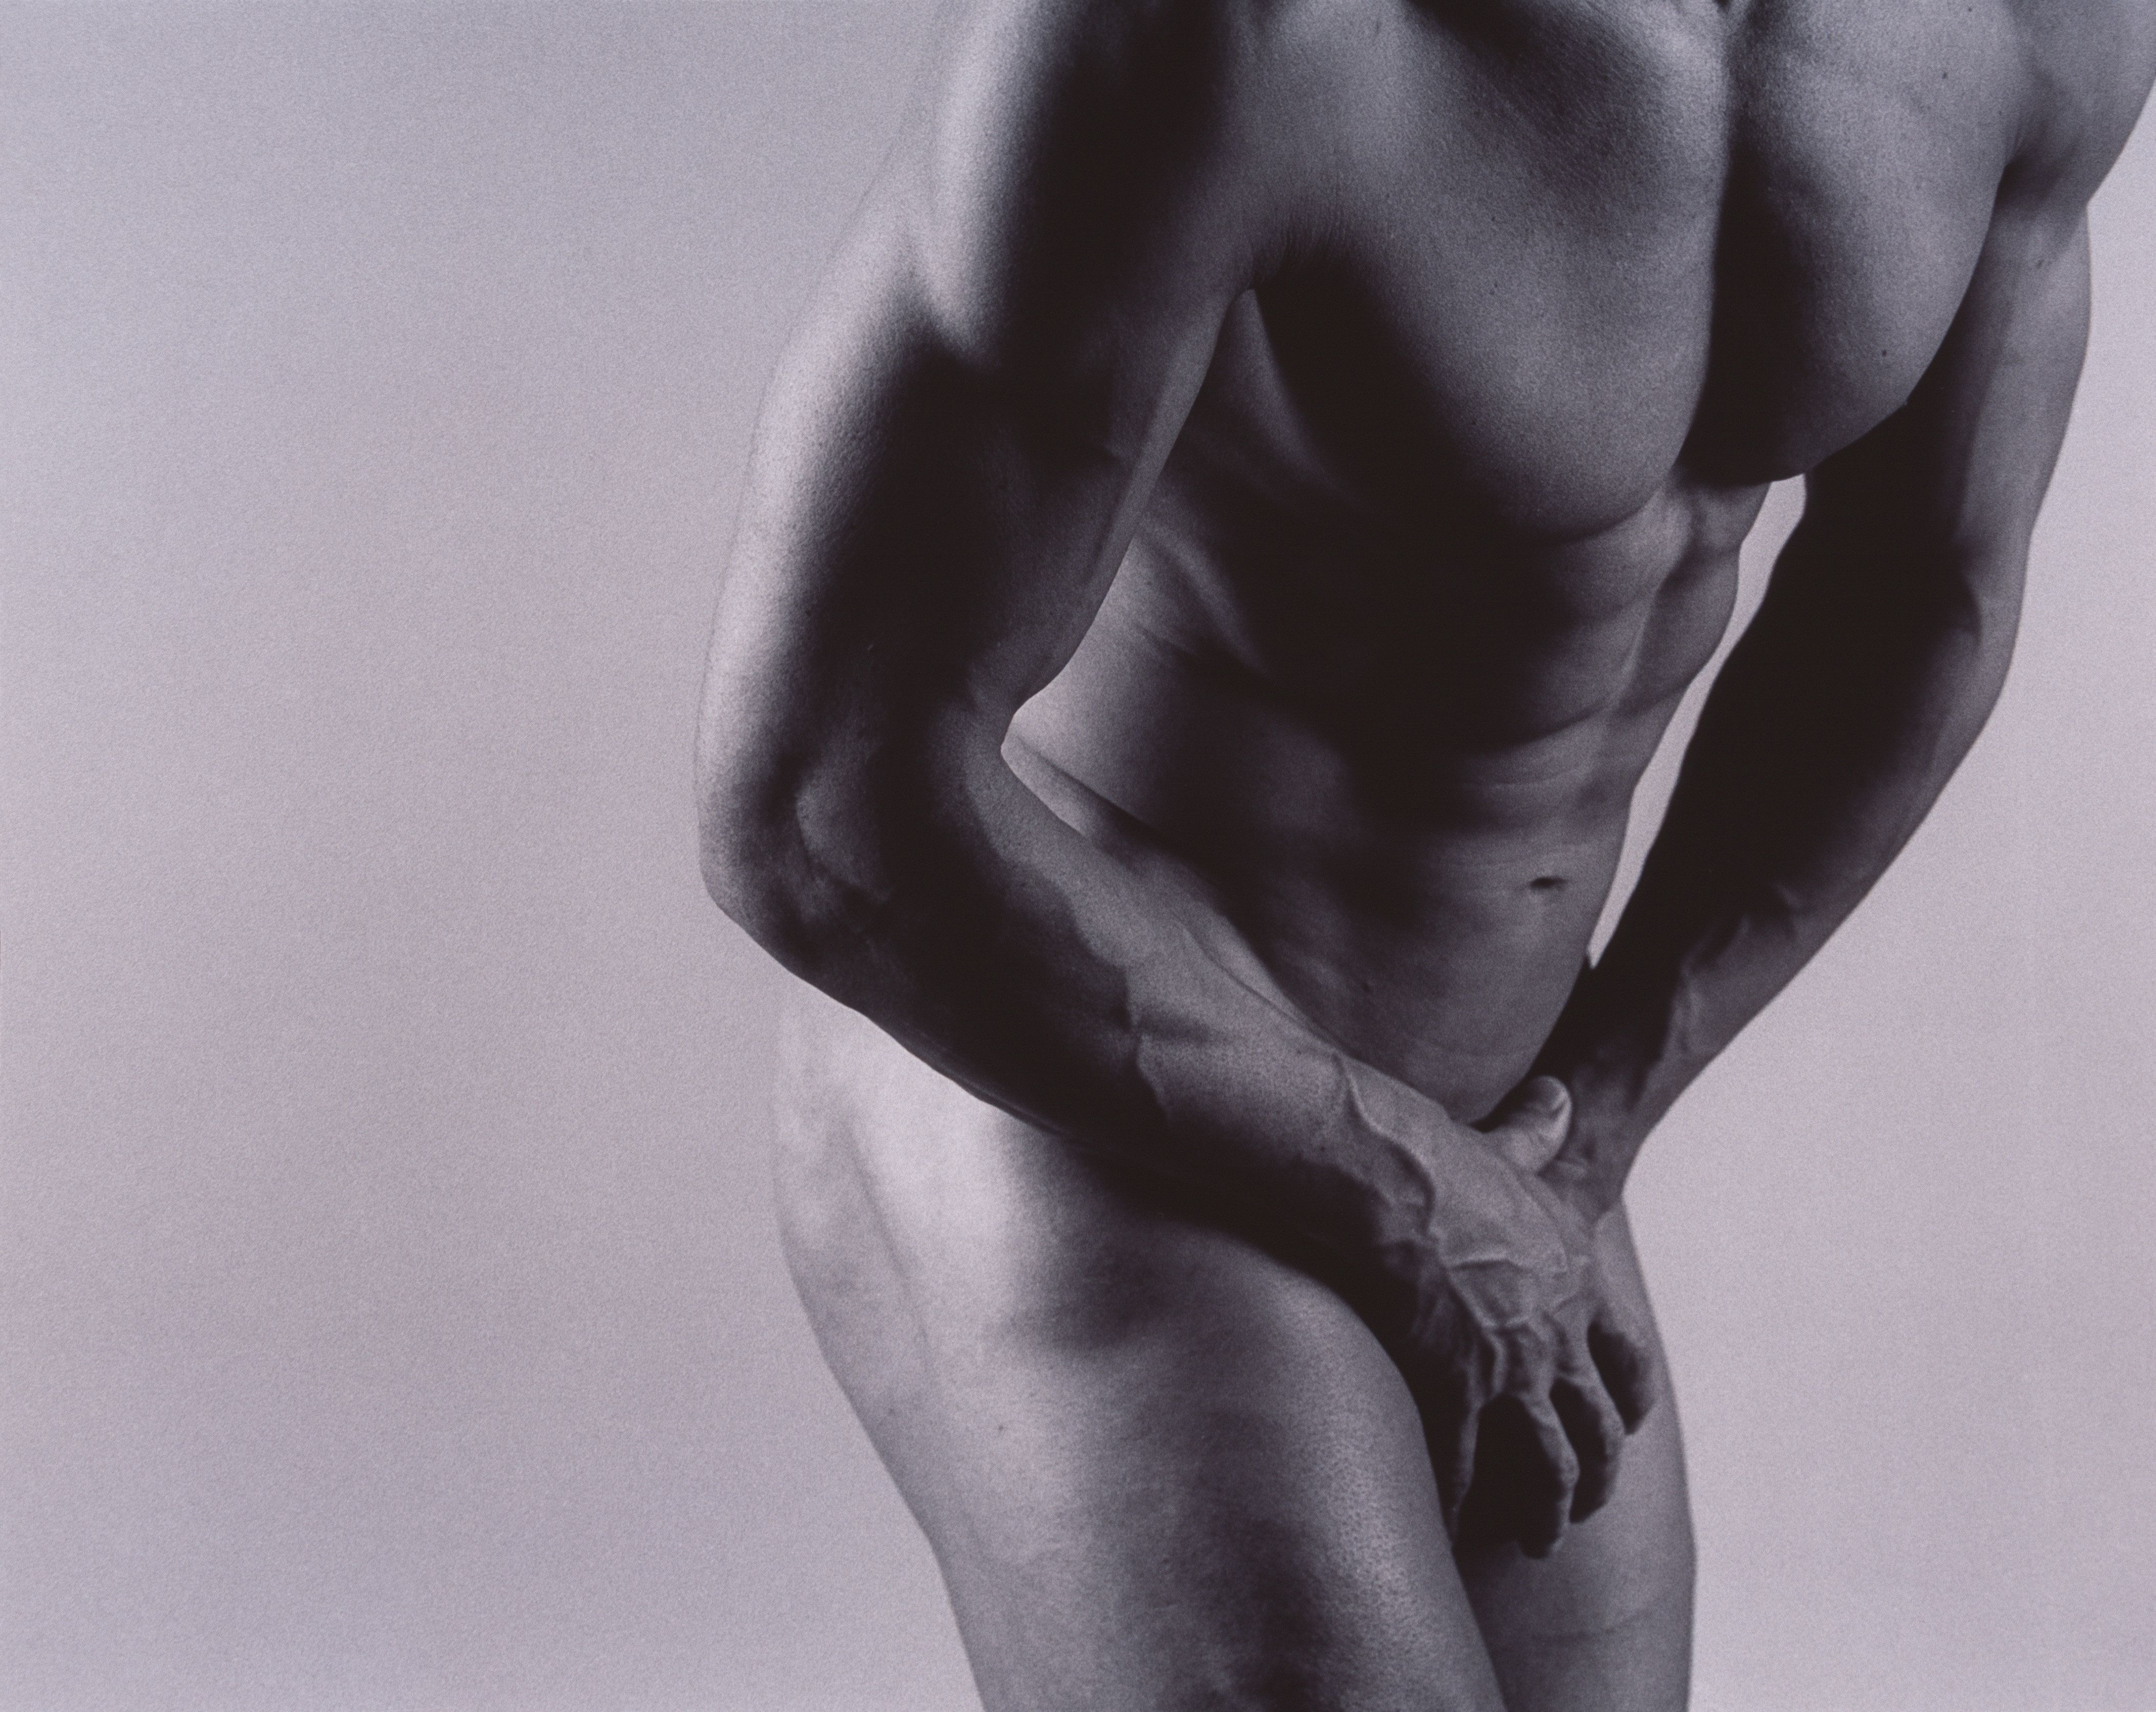 Penile fracture is a very real -- and painful -- thing.